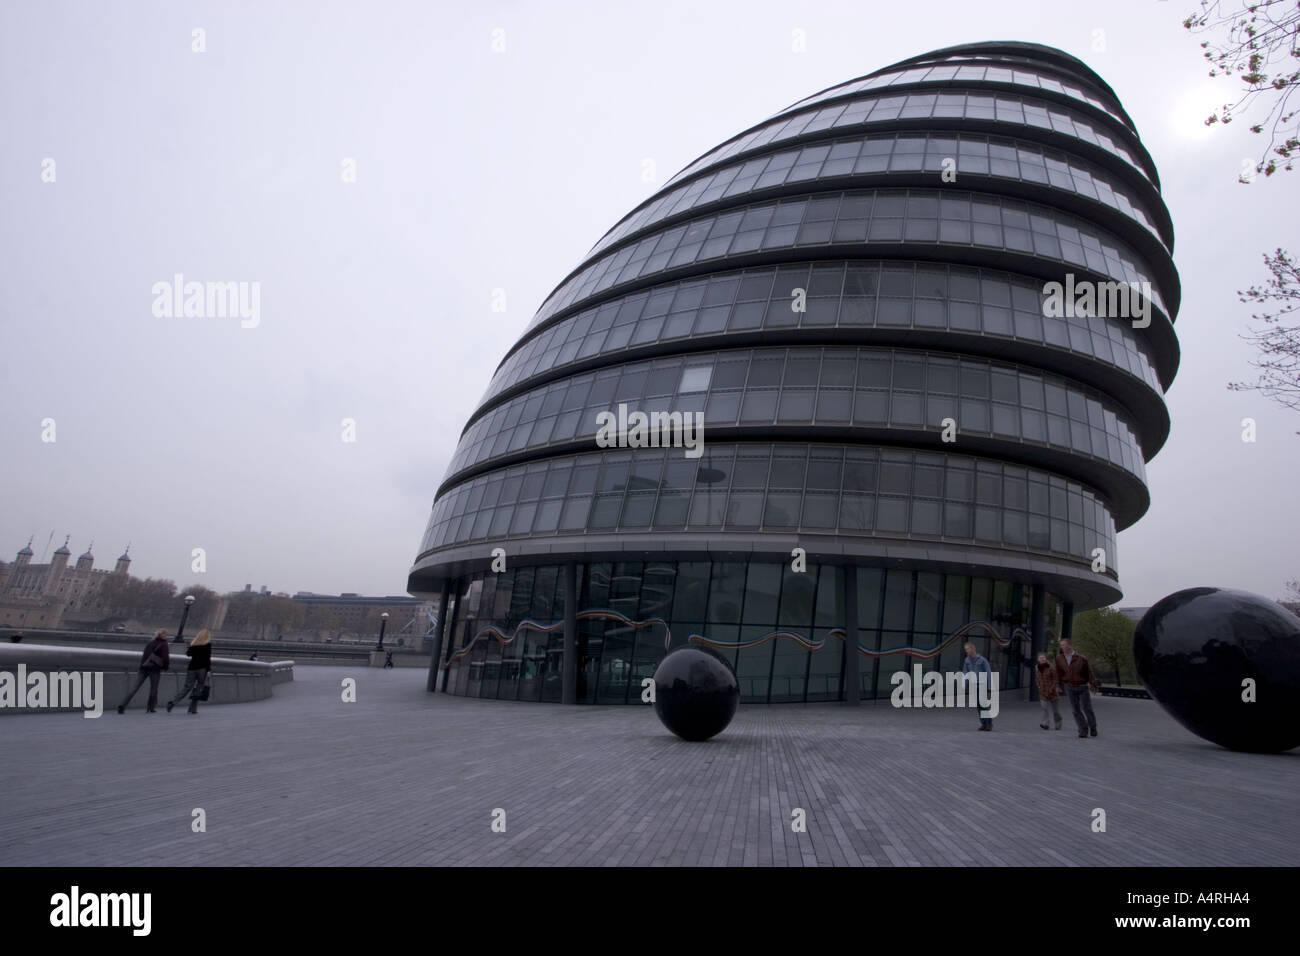 residence of London Assembly City Hall Building designed by Lord Foster at a cost of 43 million also known as glass testicle - Stock Image